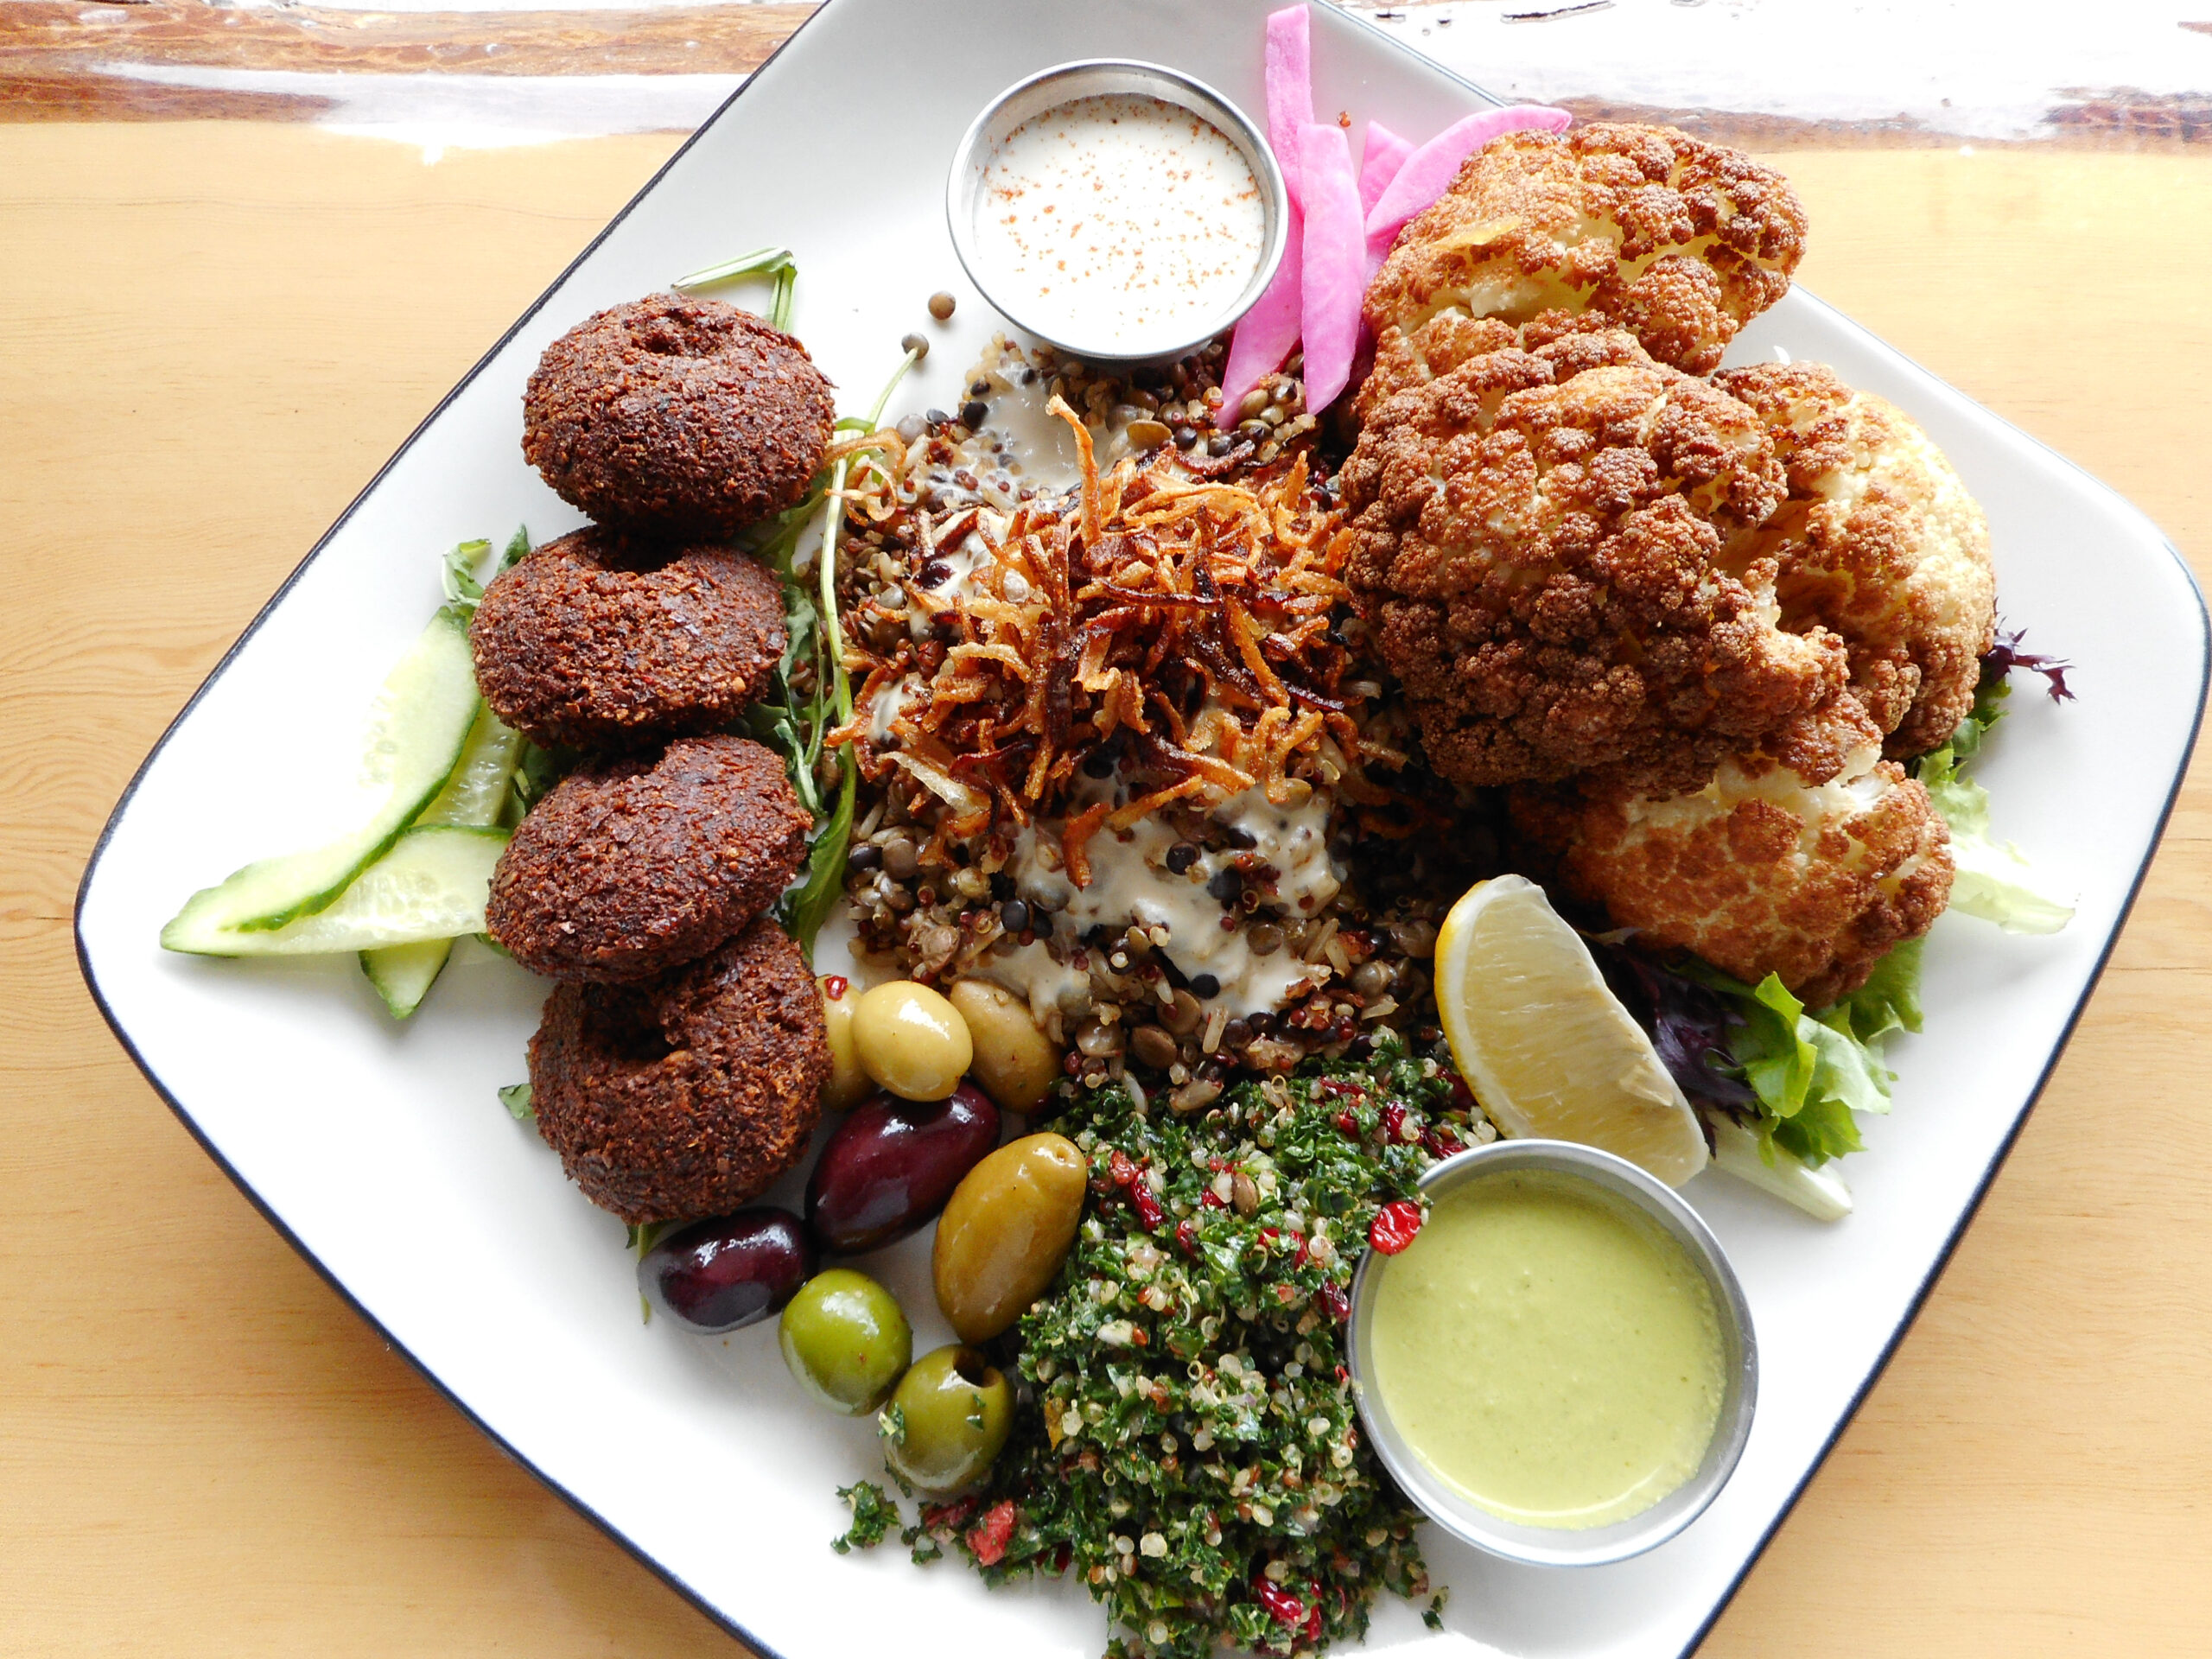 Saha Nabatti Platter a delicious v egan dish from one of our favourite restaurants in Squamish